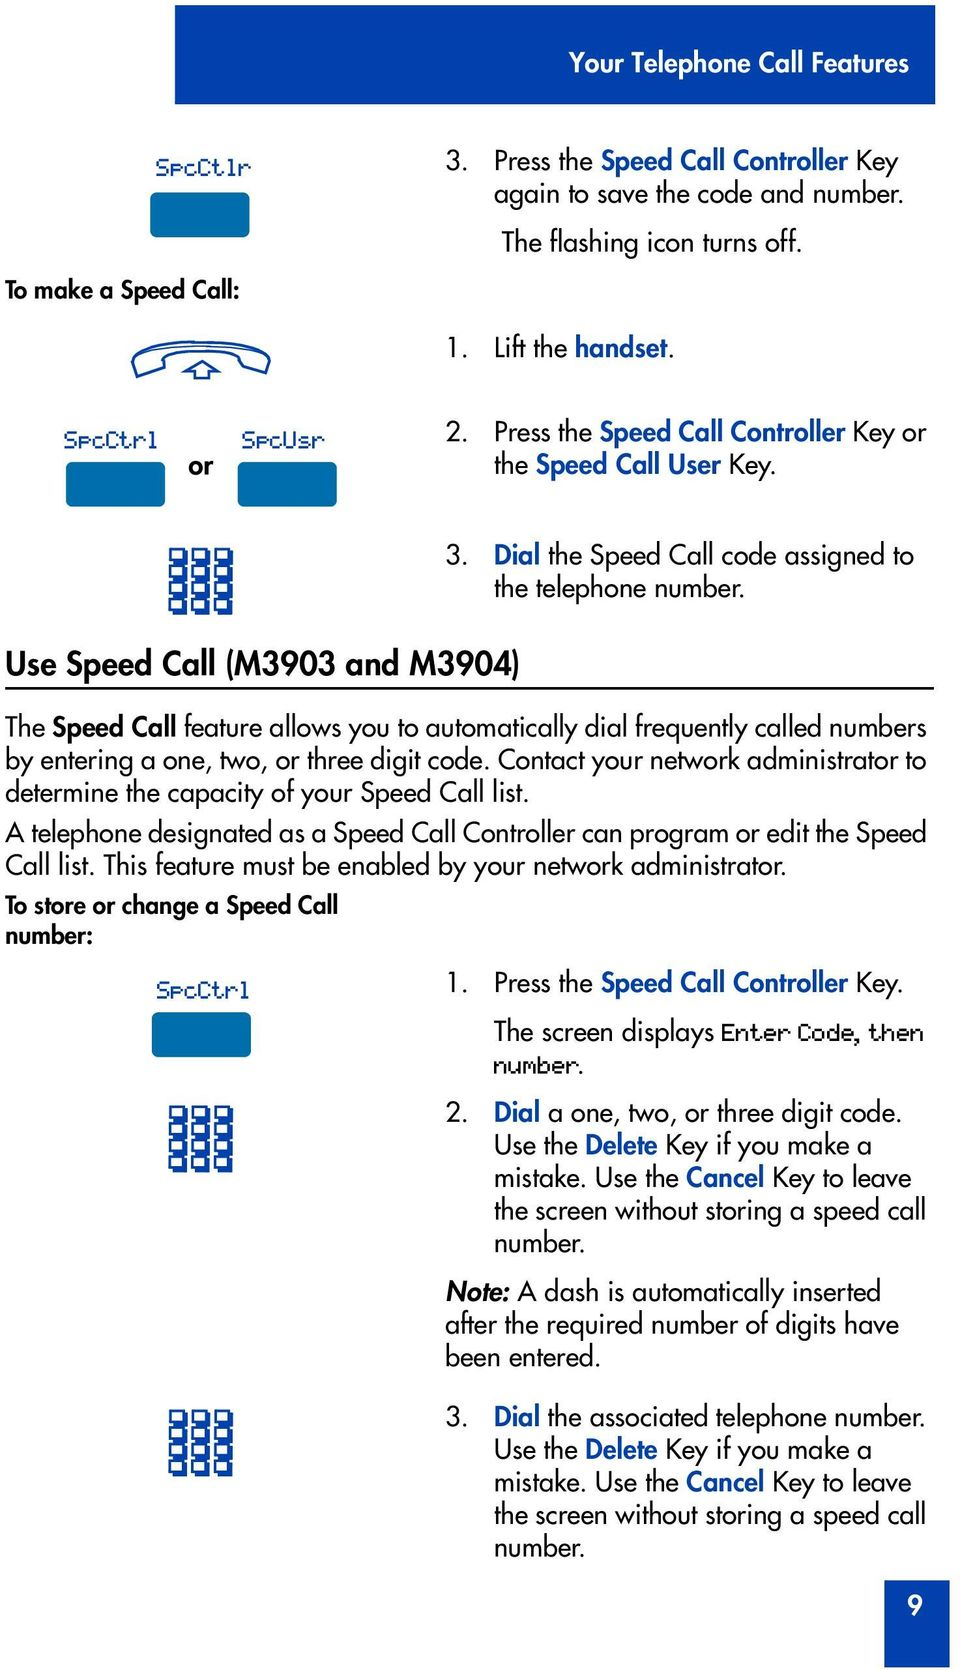 The Speed Call feature allows you to automatically dial frequently called numbers by entering a one, two, three digit code.